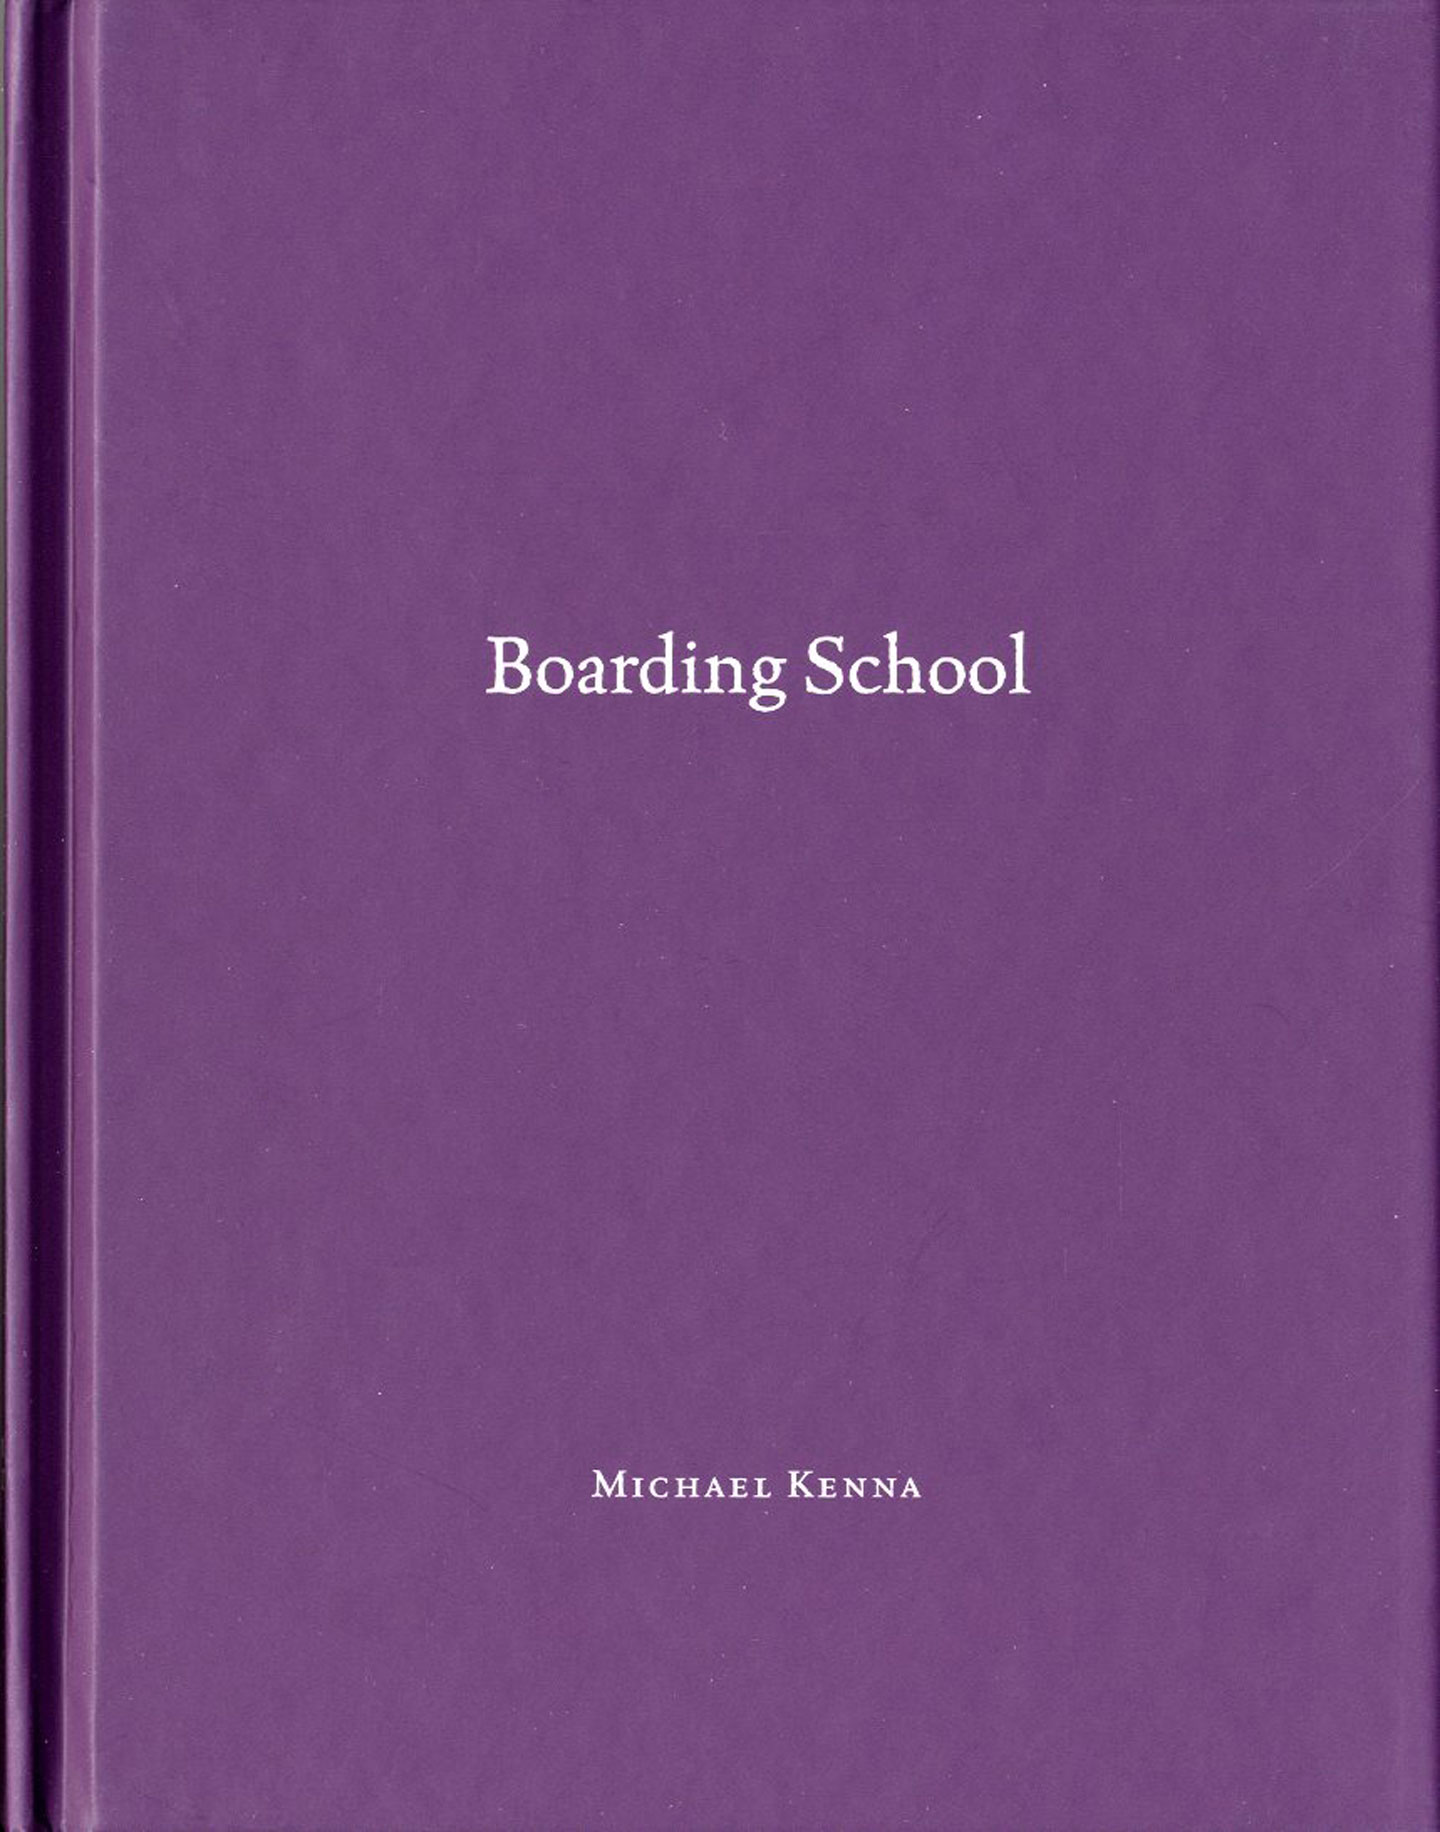 Michael Kenna: Boarding School (One Picture Book #21), Limited Edition (with Print)